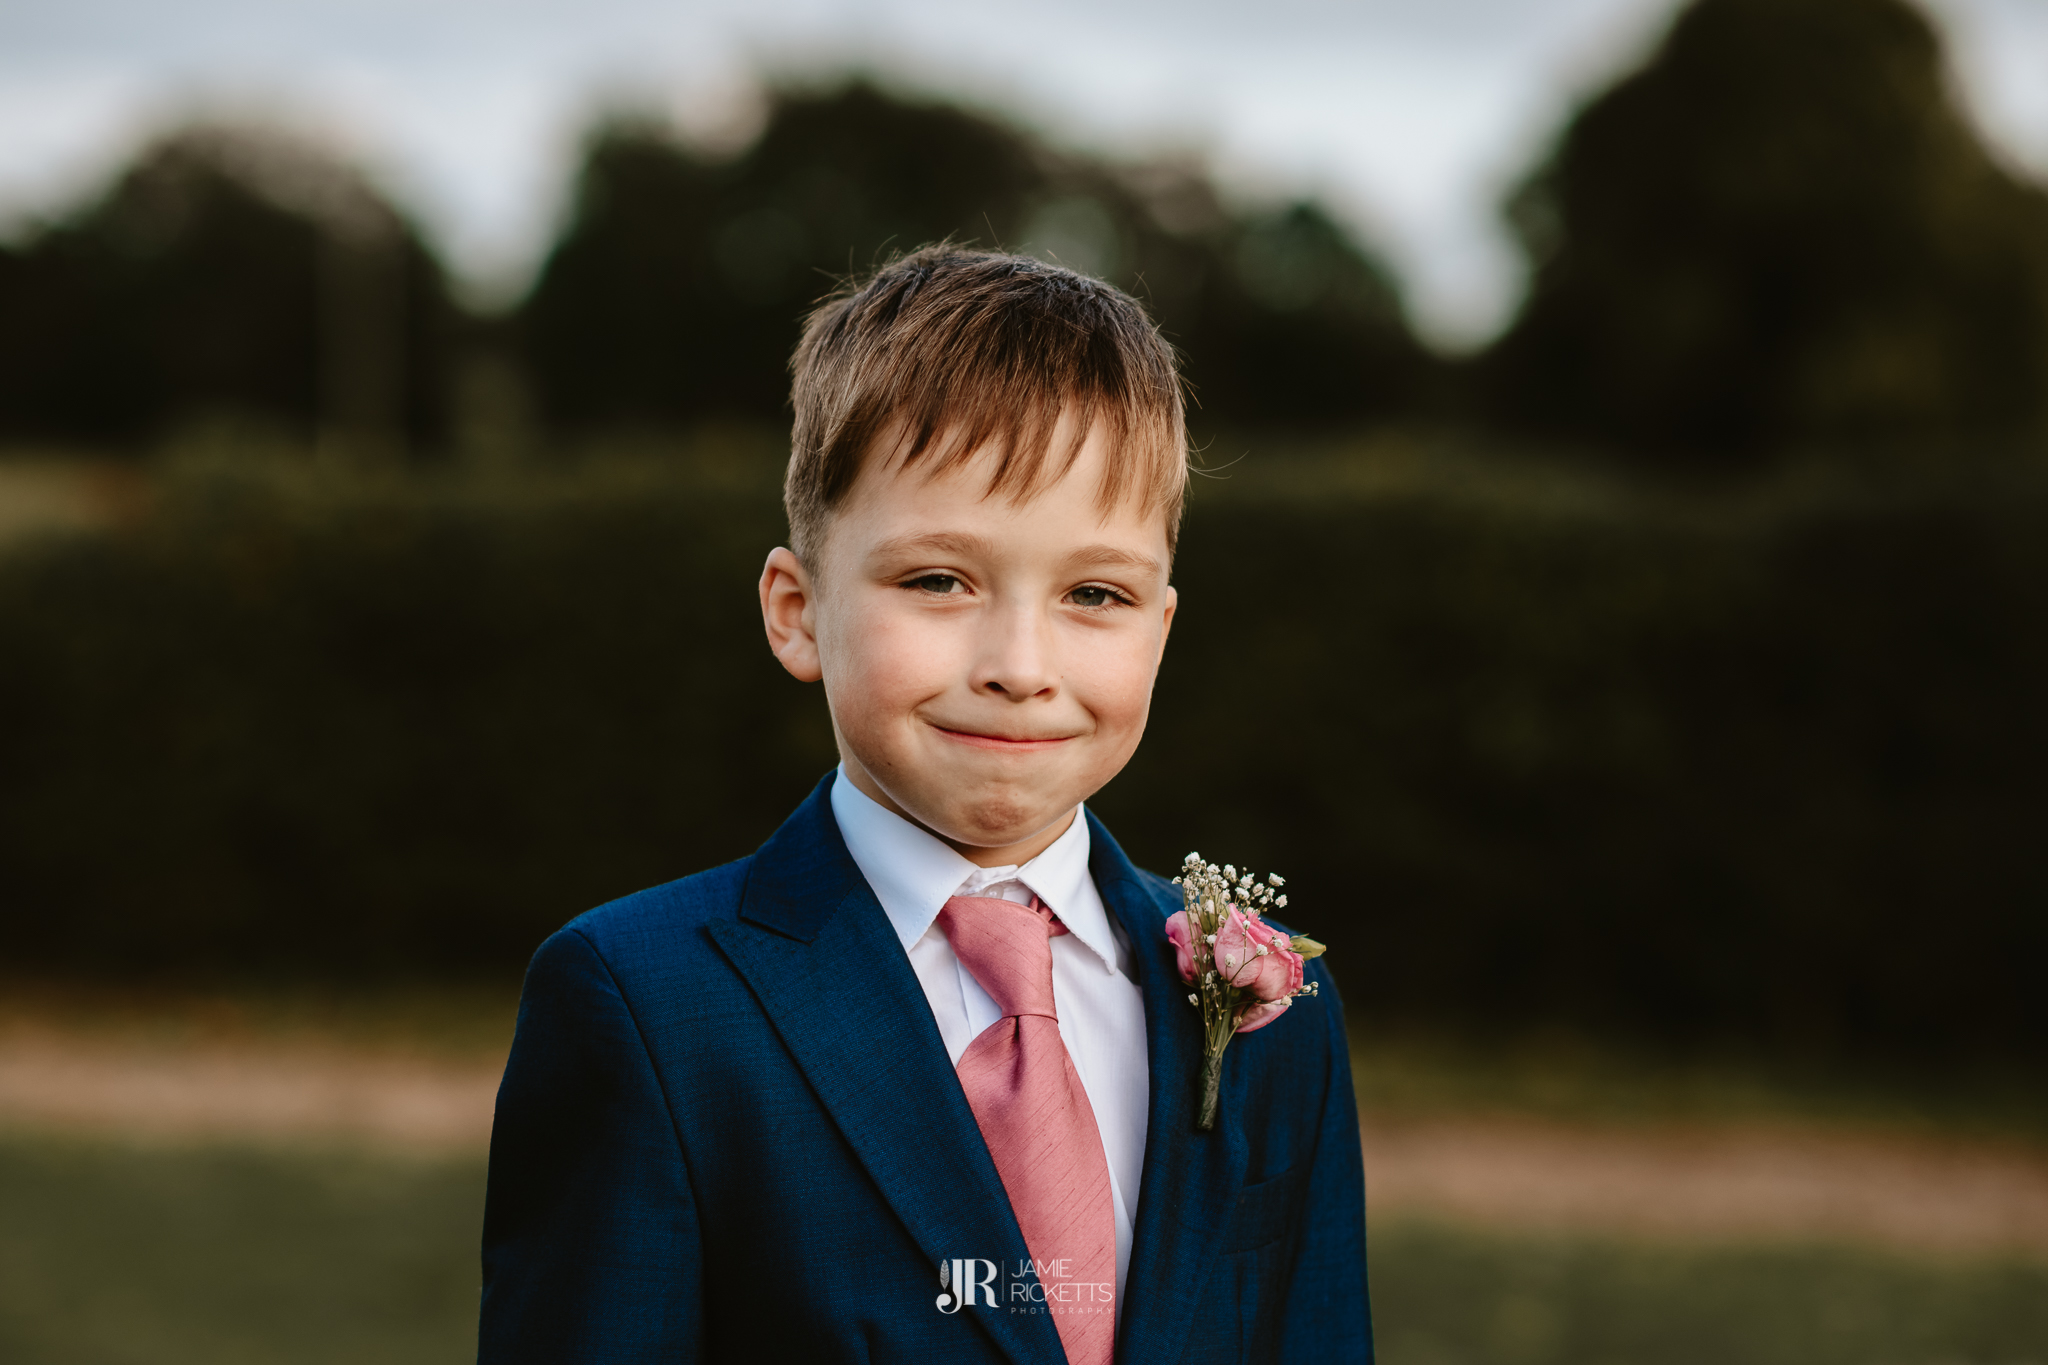 Wroxeter-Hotel-Wedding-Photography-In-Shropshire-By-Shropshire-Wedding-Photographer-Jamie-Ricketts-190.JPG